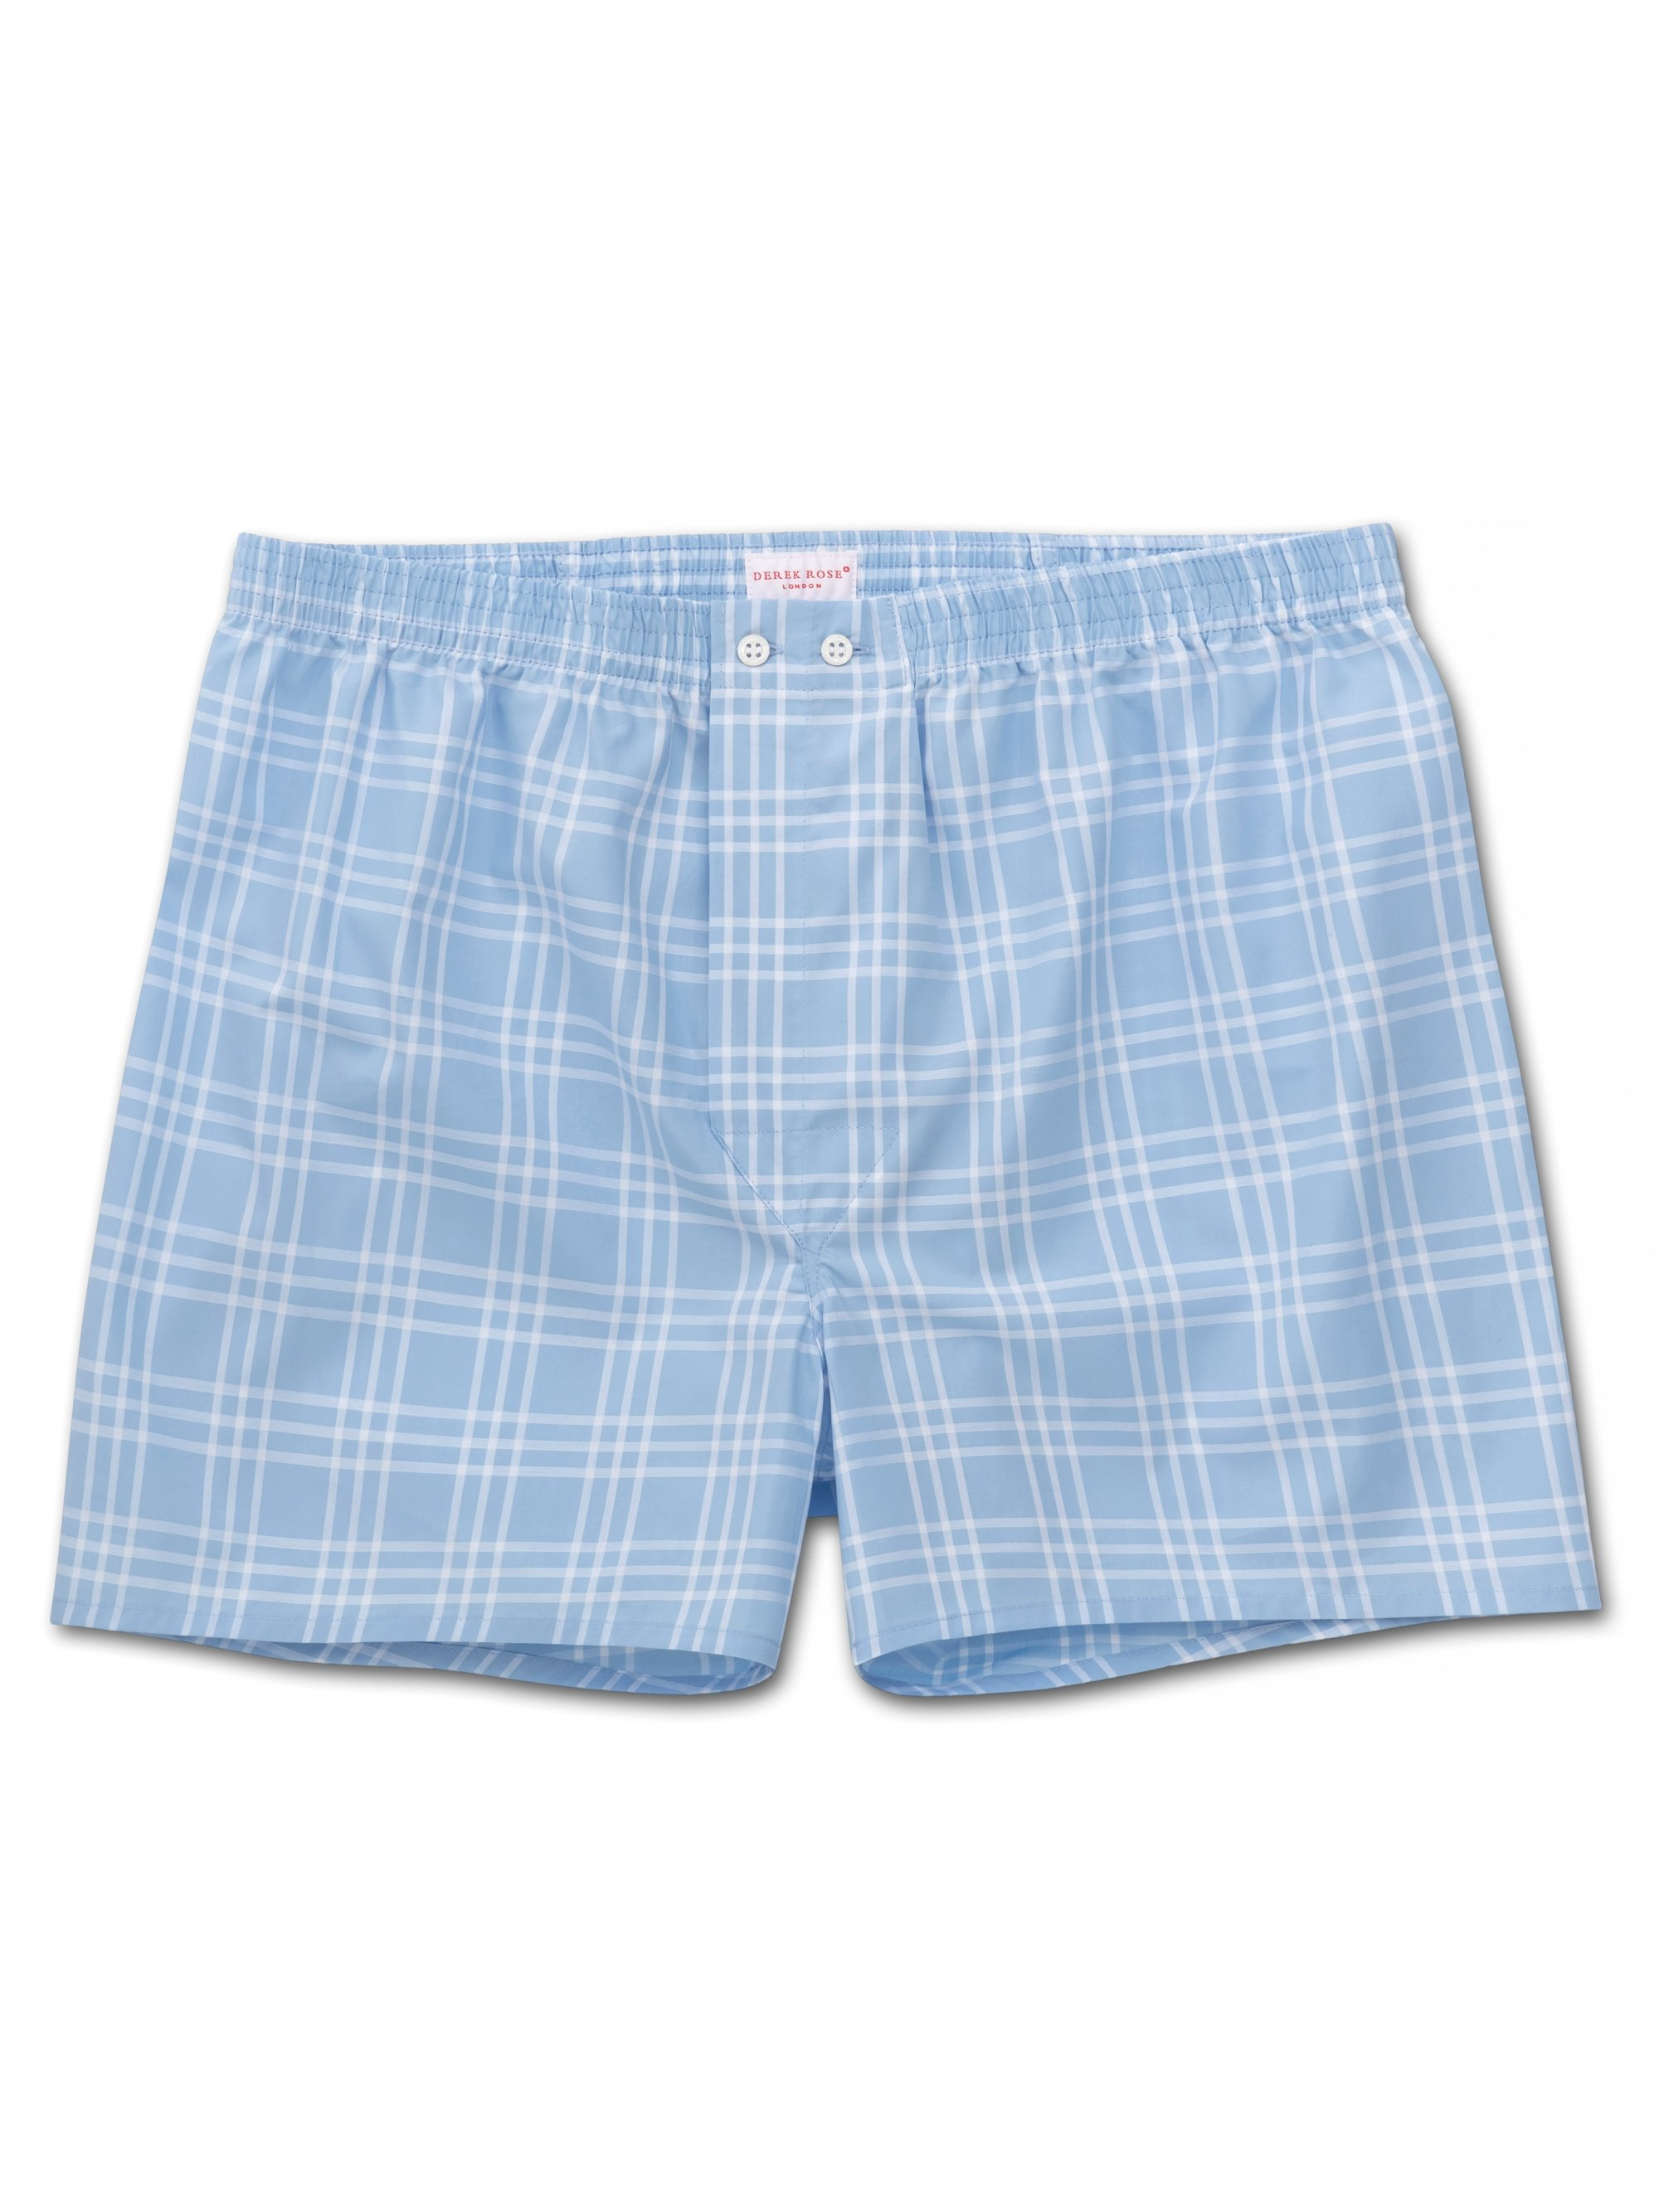 Men's Classic Fit Boxer Shorts Barker 27 Cotton Check Blue